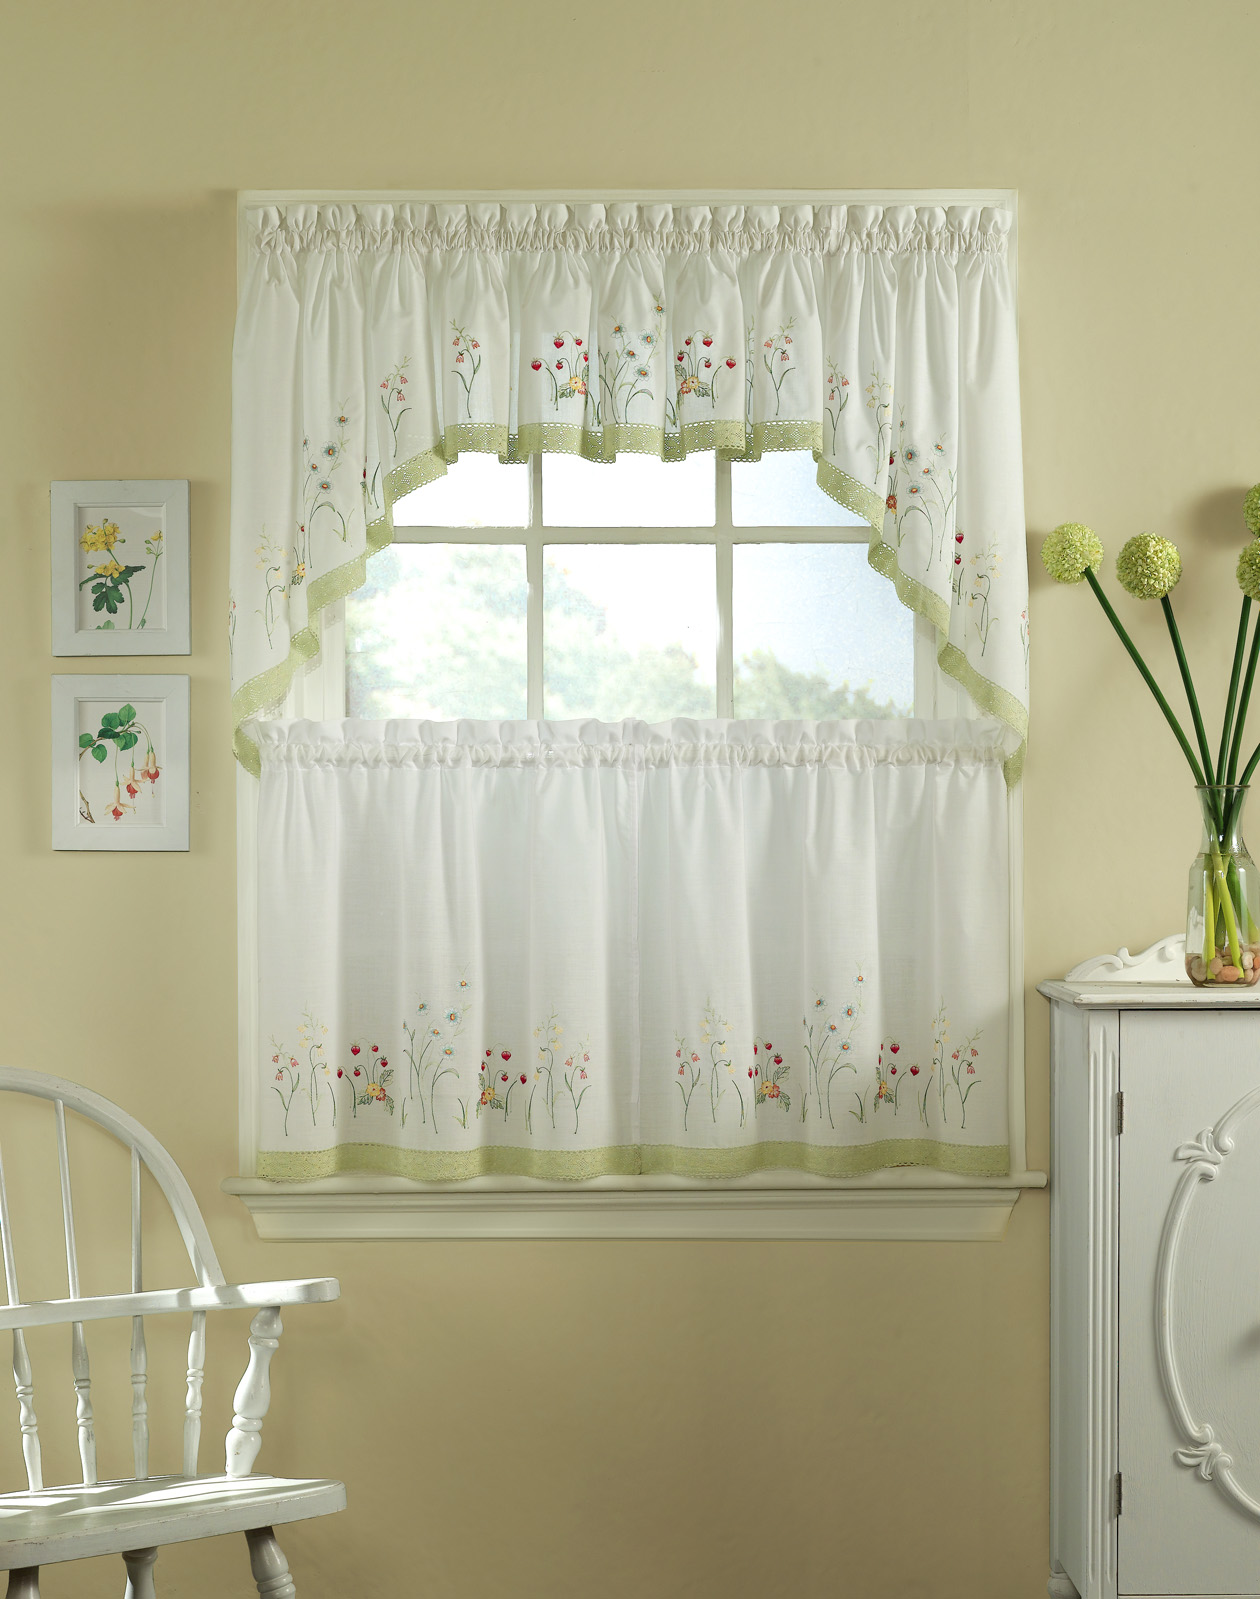 Window Curtain Design Ideas: Half Window Curtains Ideas